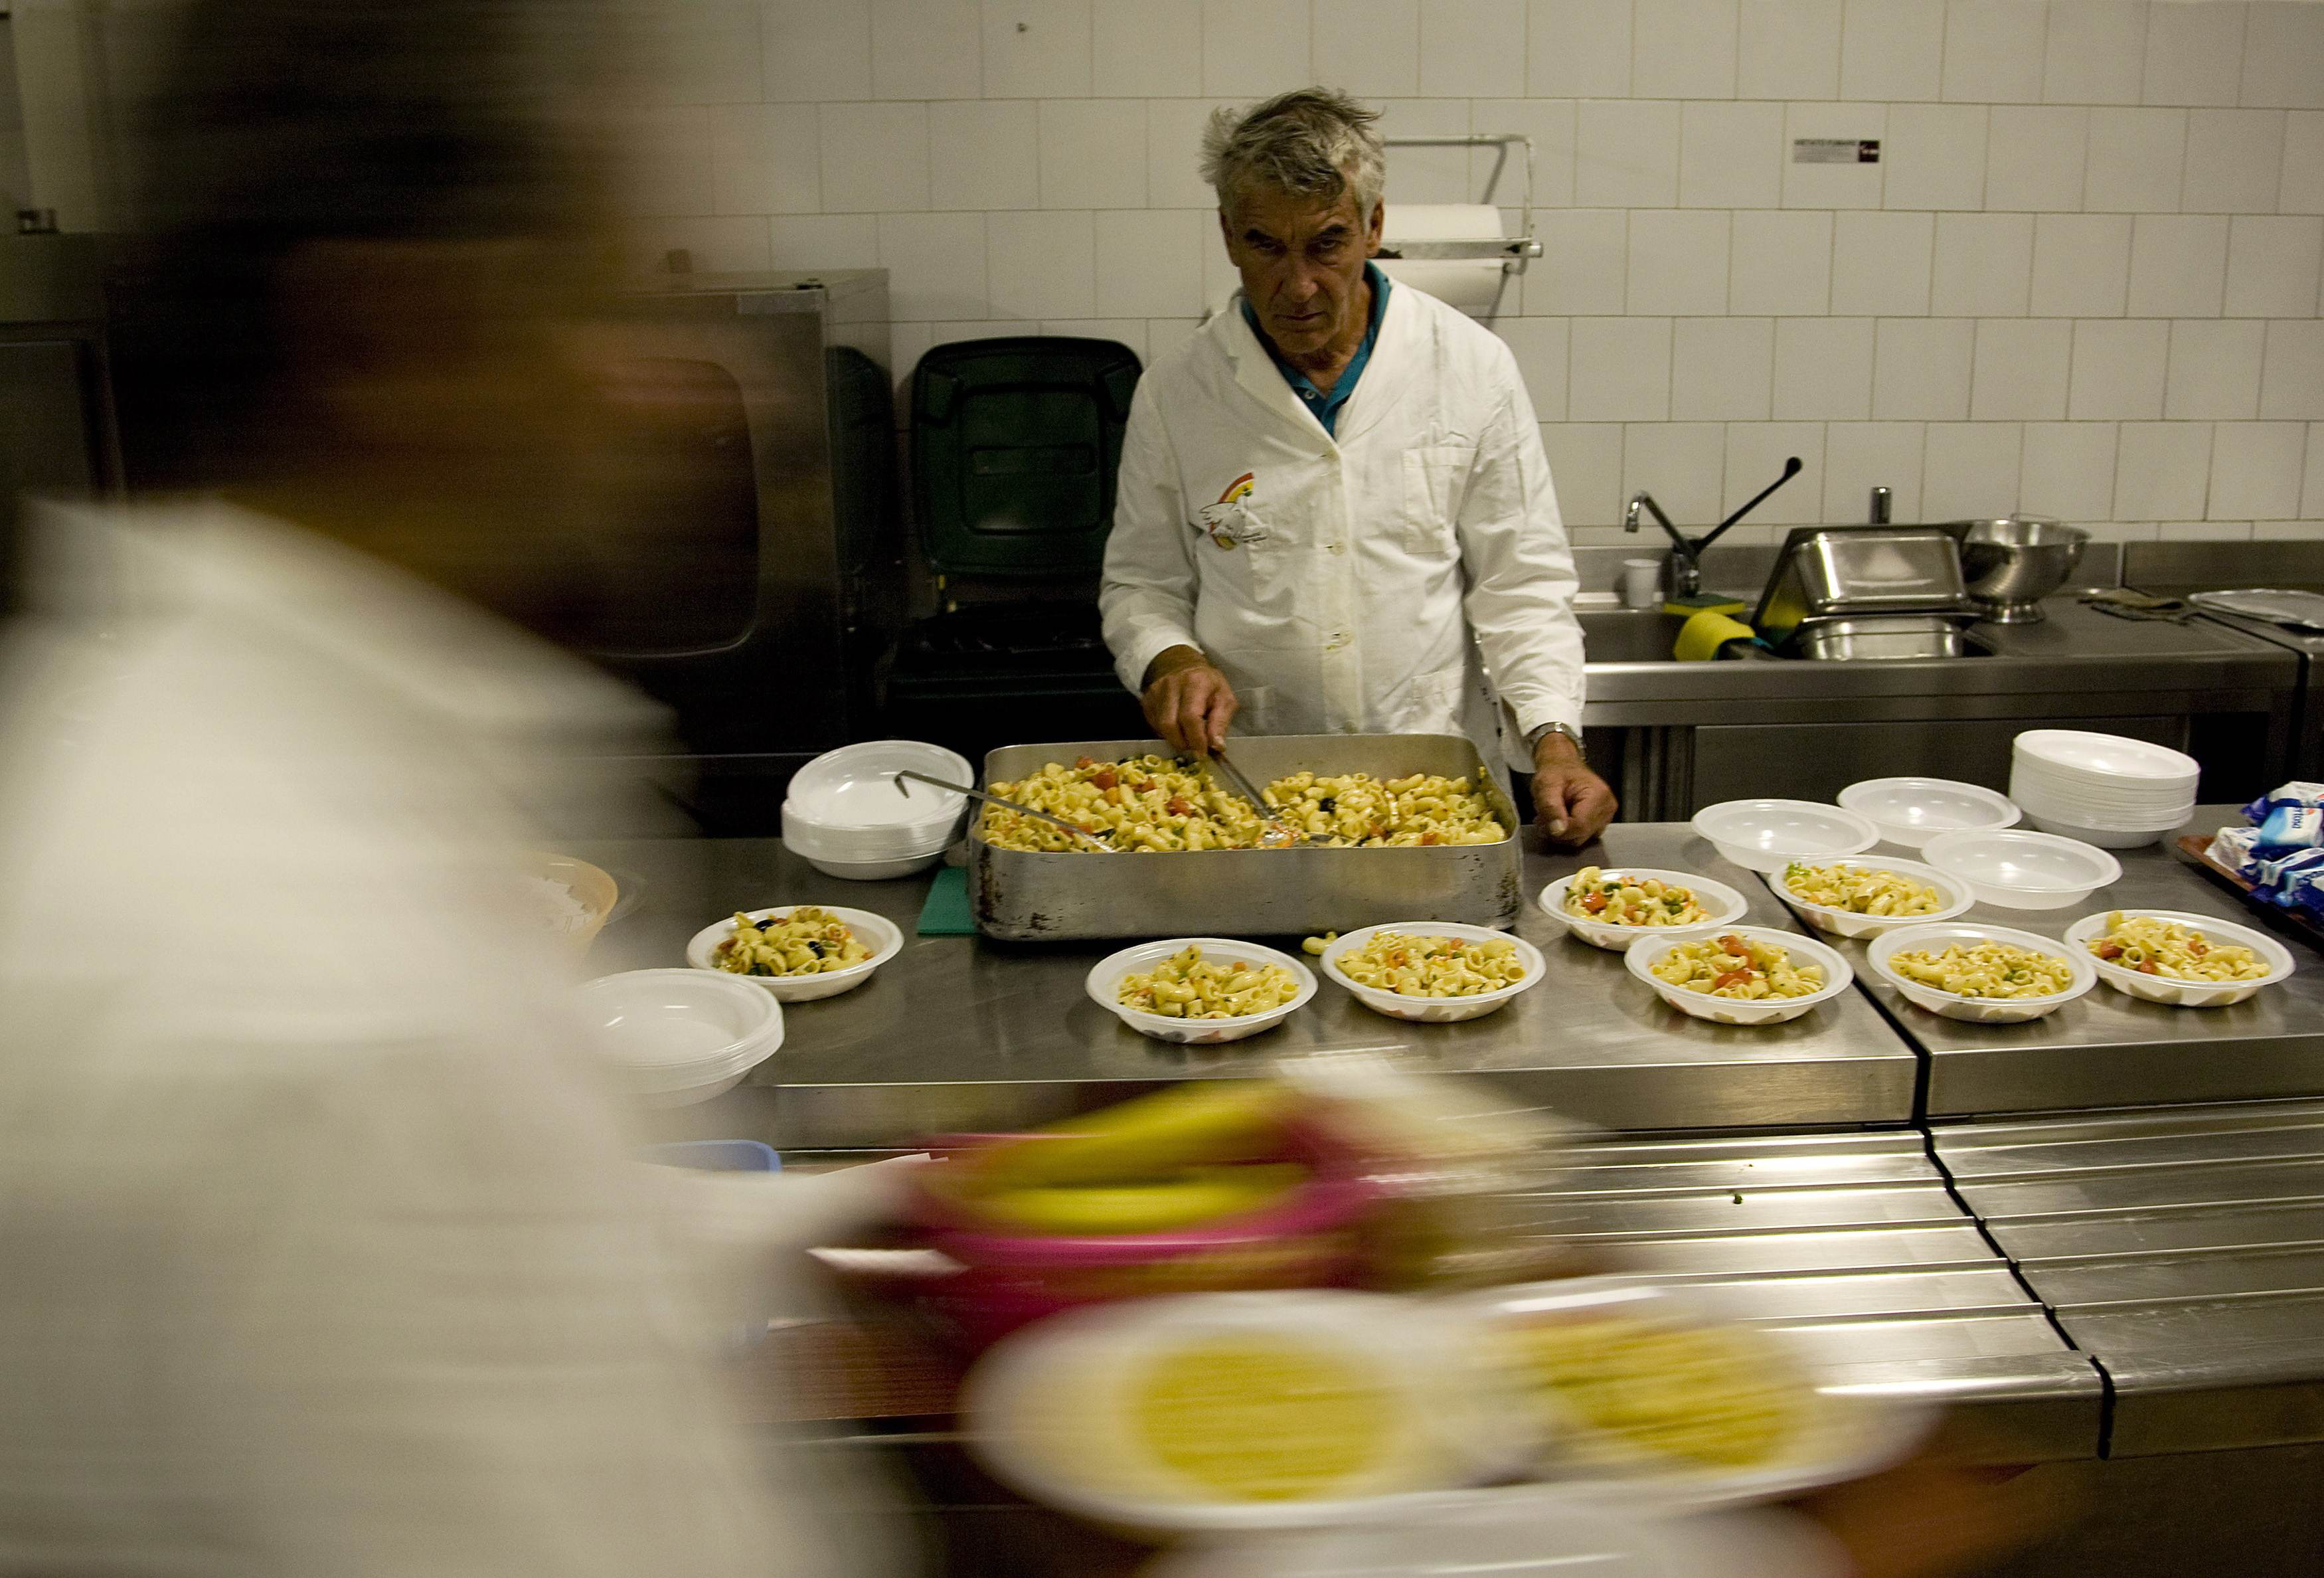 Free meals are served in a 'soup kitchen' run by the Sant'Egidio Christian community in Rome, Italy on Sept. 17.